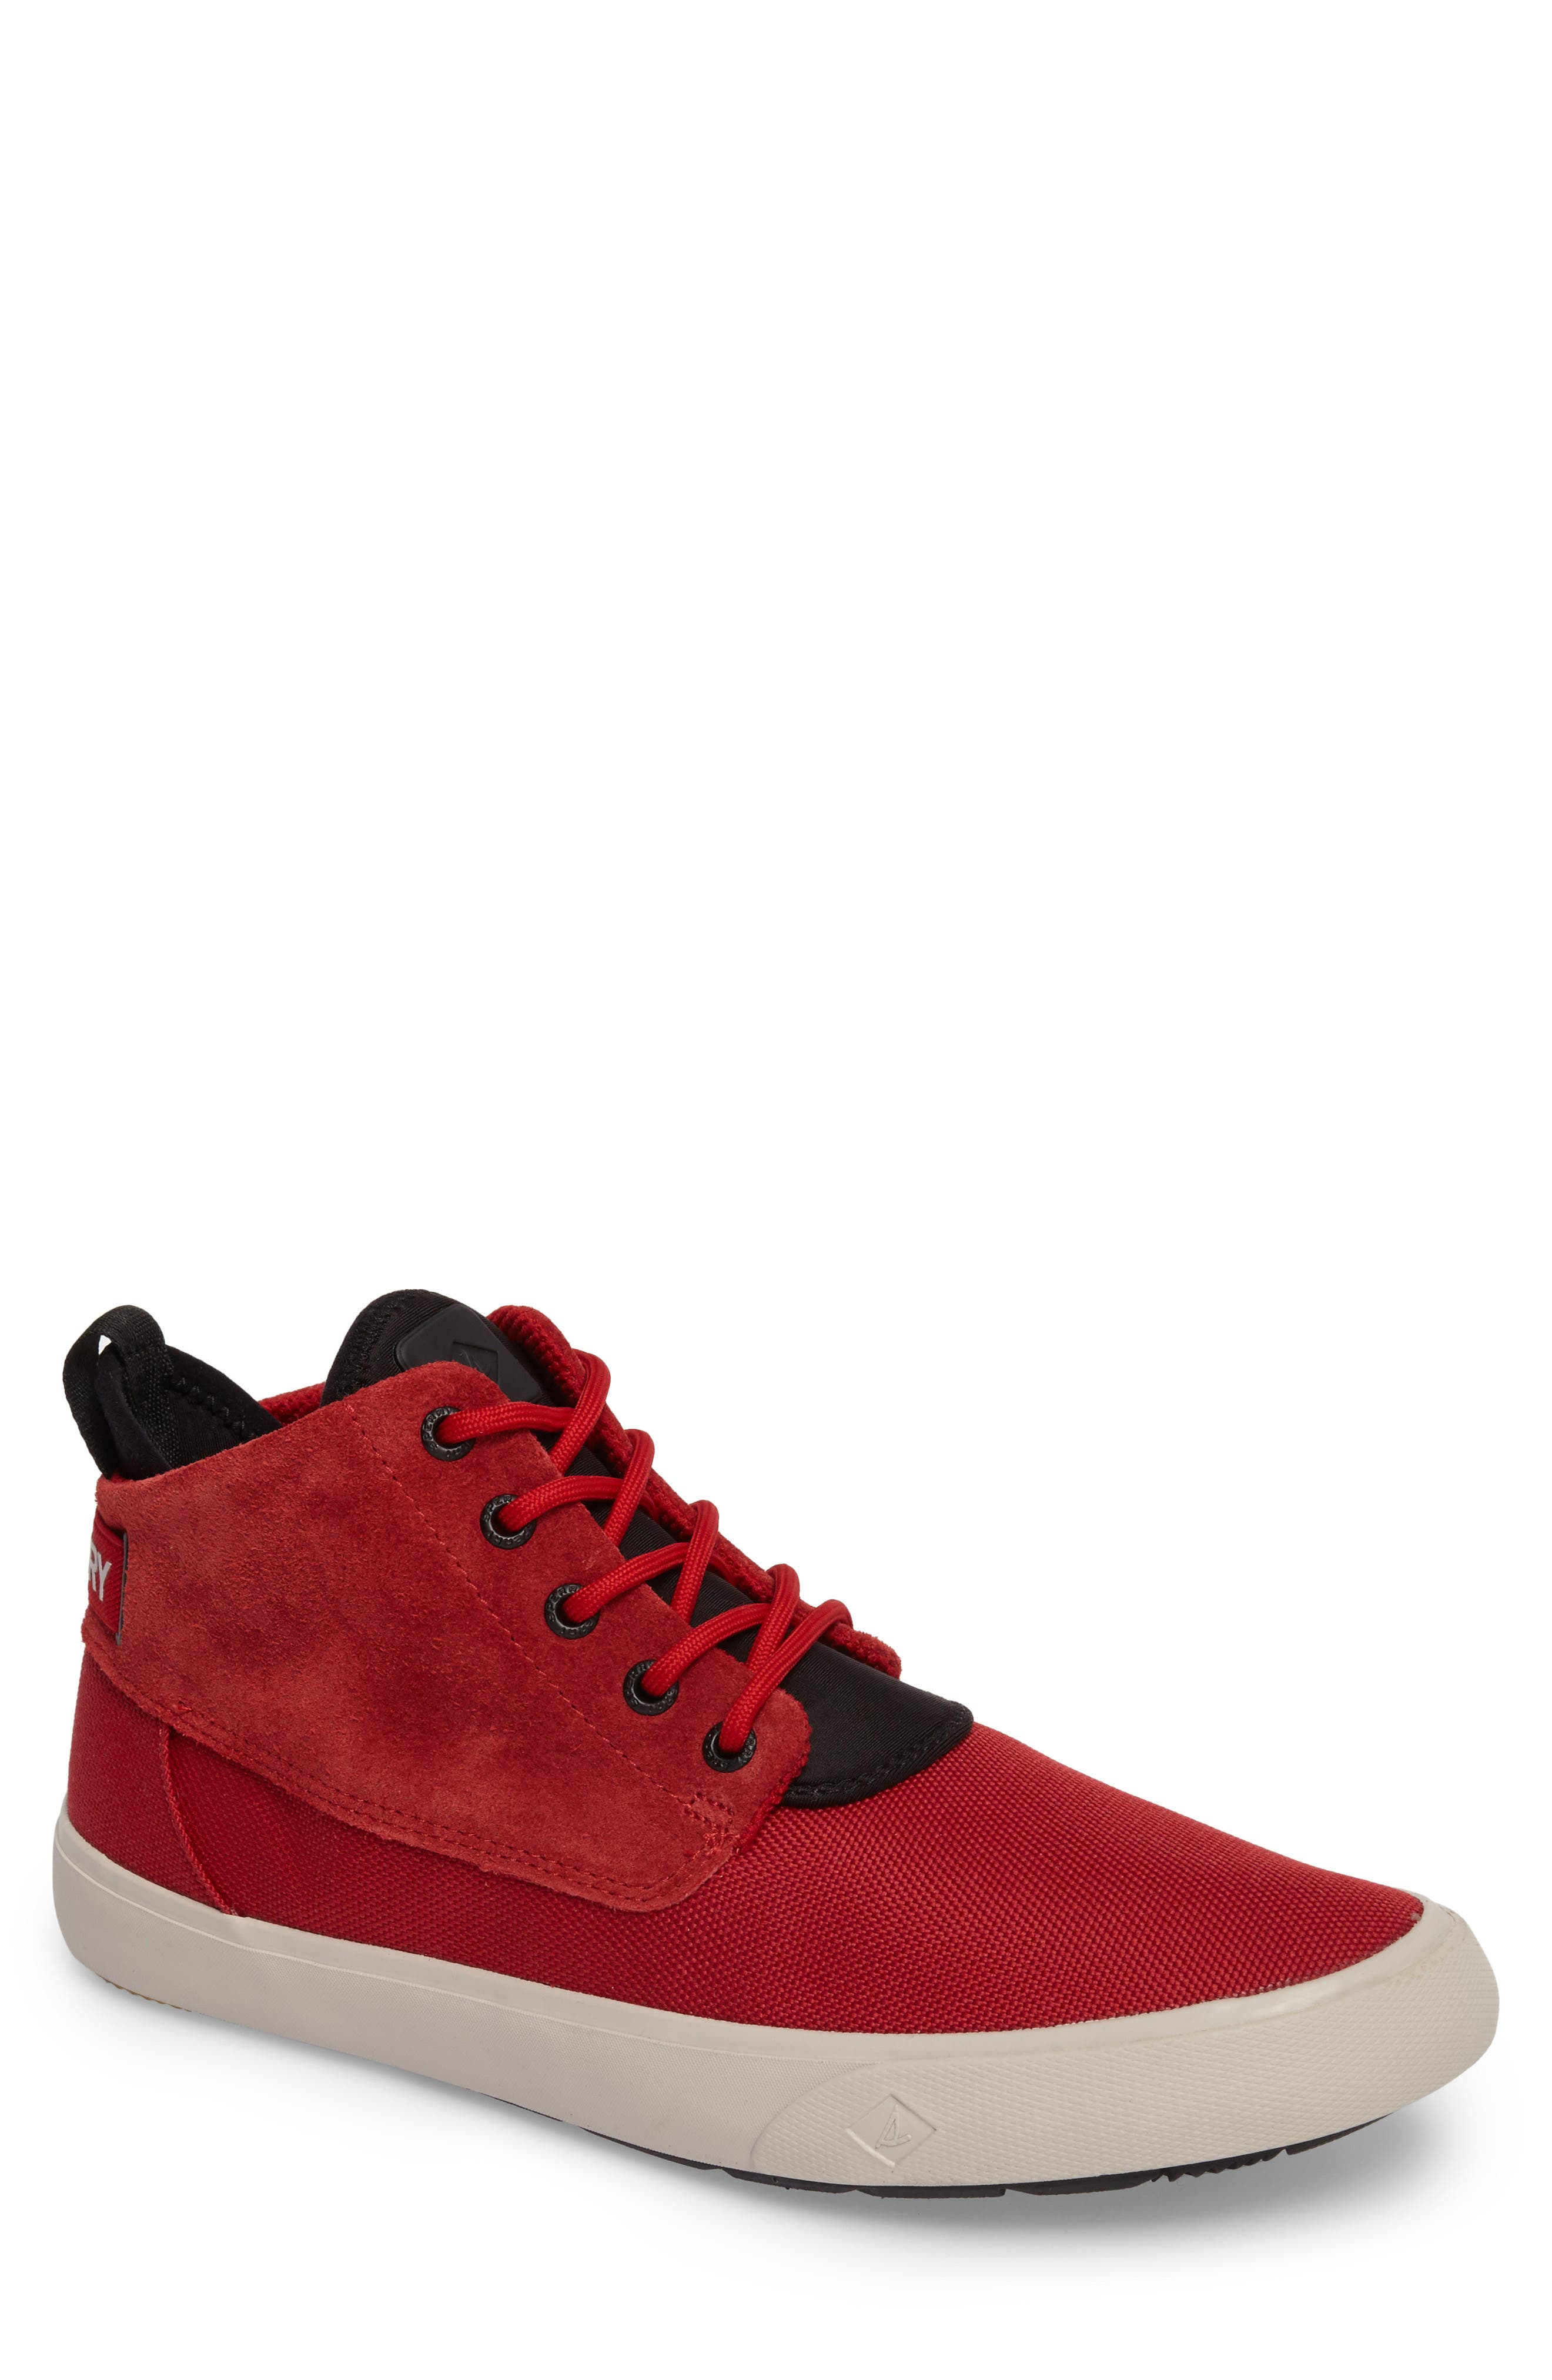 Cutwater Sneaker,                         Main,                         color, RED